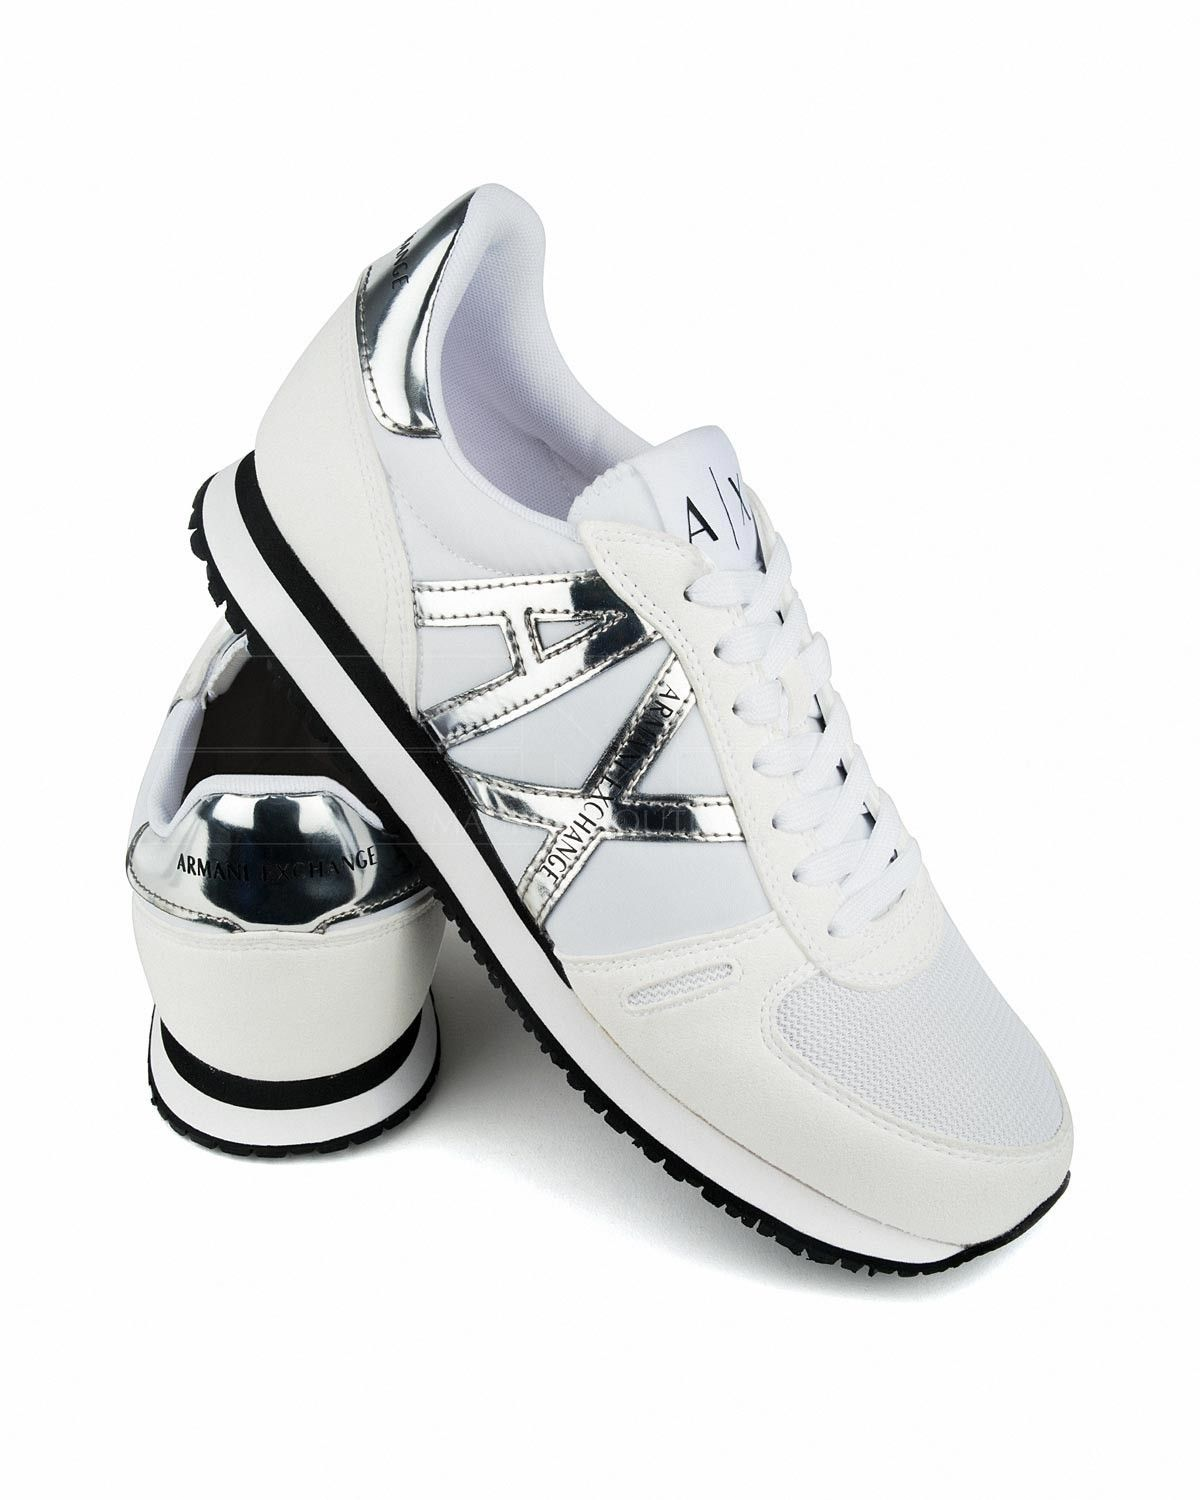 e20548e92 Armani Exchange Shoes - White | zapatos extraordinarios | Armani exchange  shoes, Shoes y Mens fashion shoes